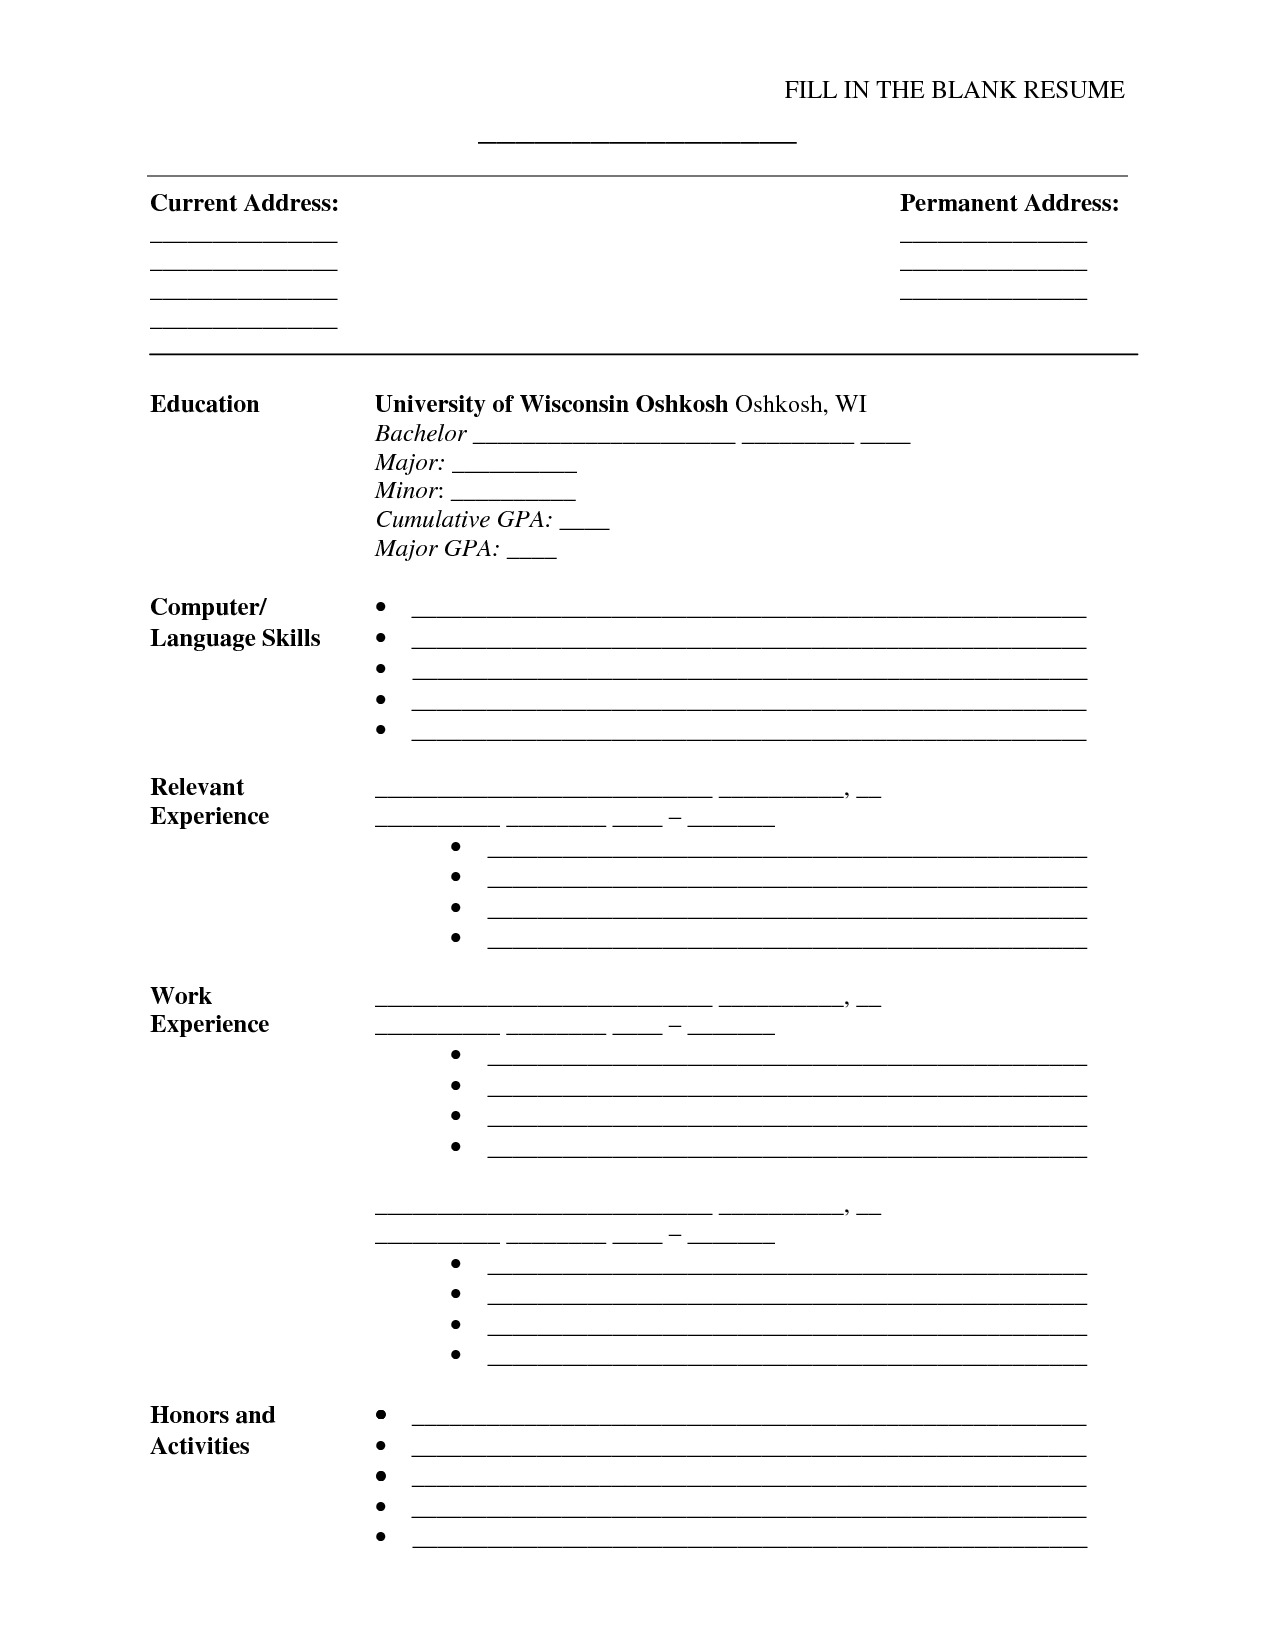 resume fill in pdf